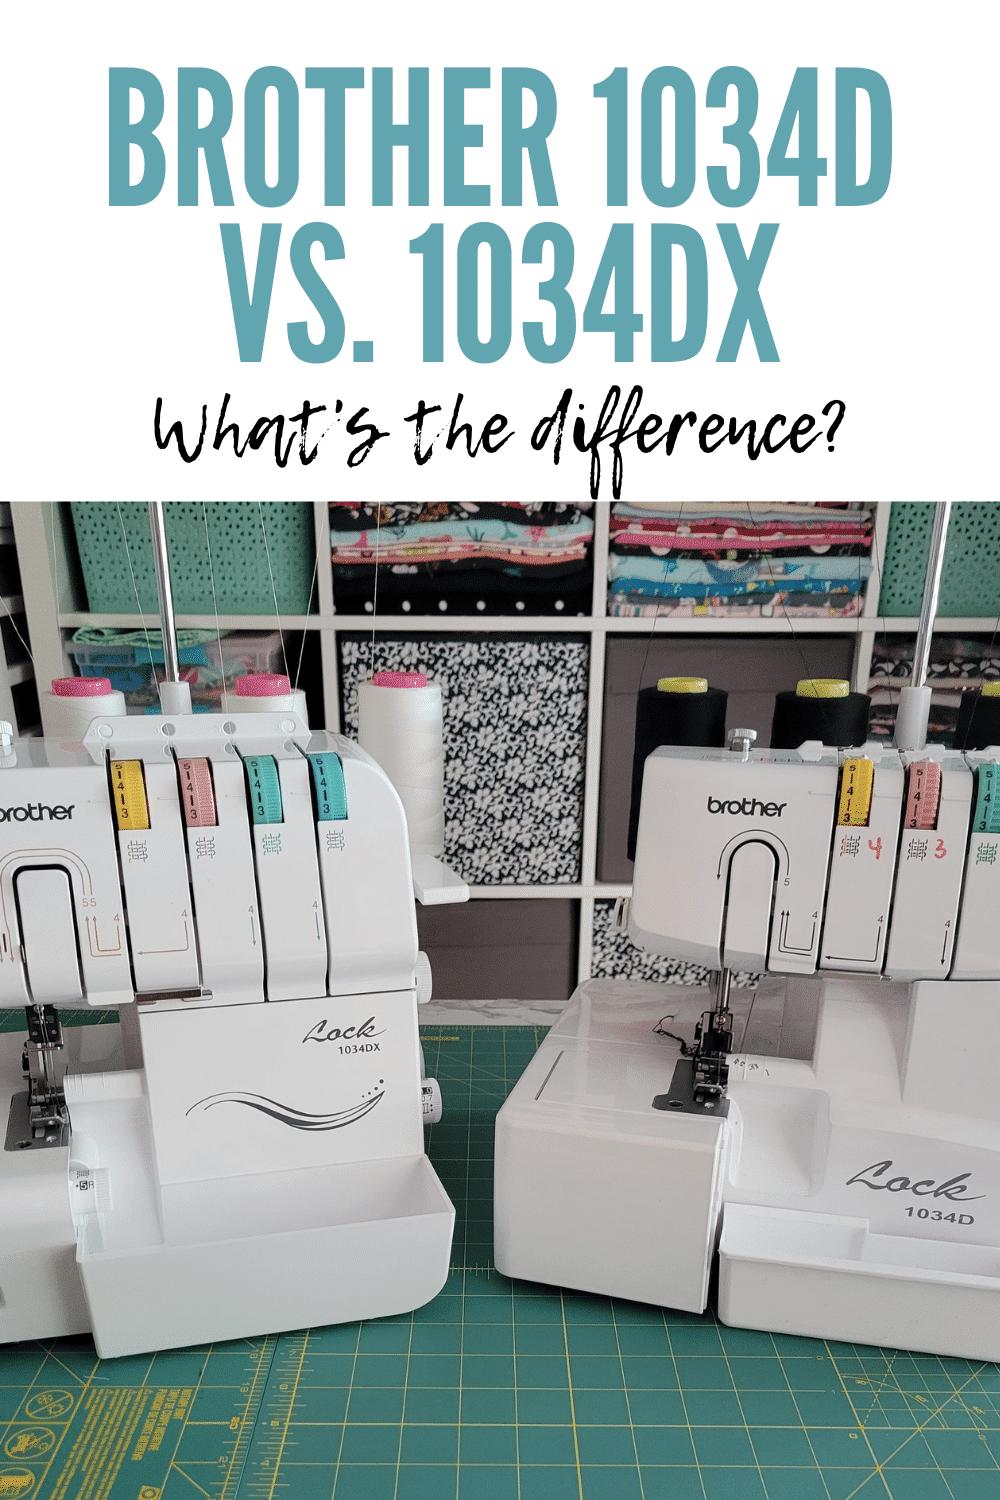 Brother 1034D vs. 1034DX: What's the Difference?